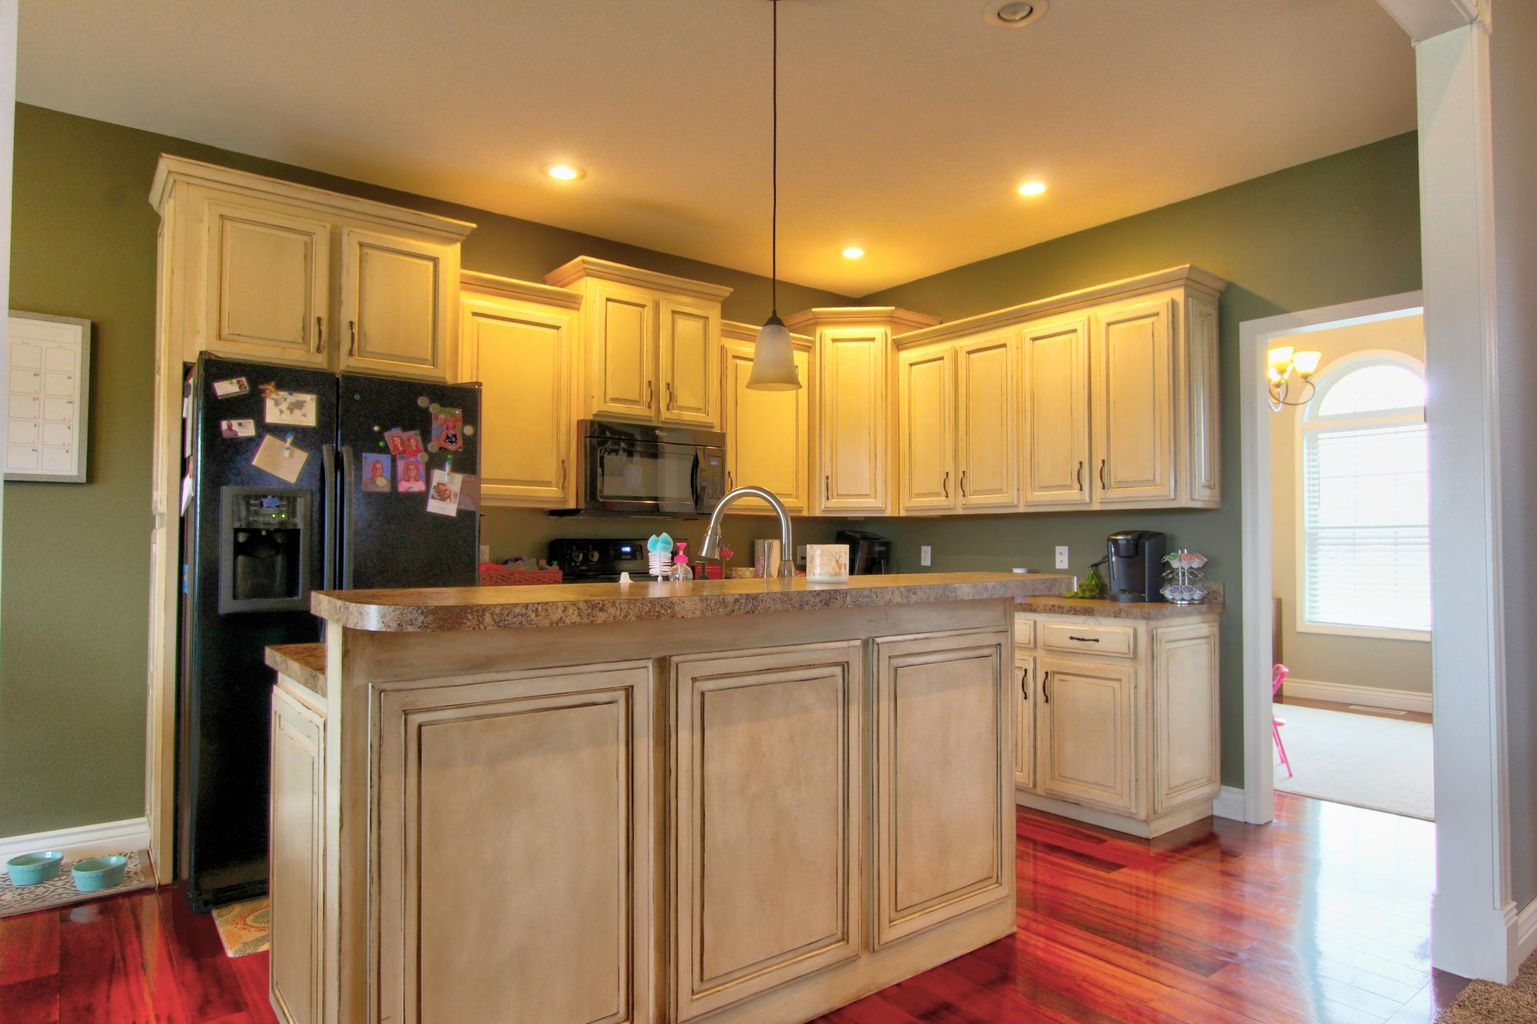 10899 BROADACRE DR., HOLTS SUMMIT, MO 65043